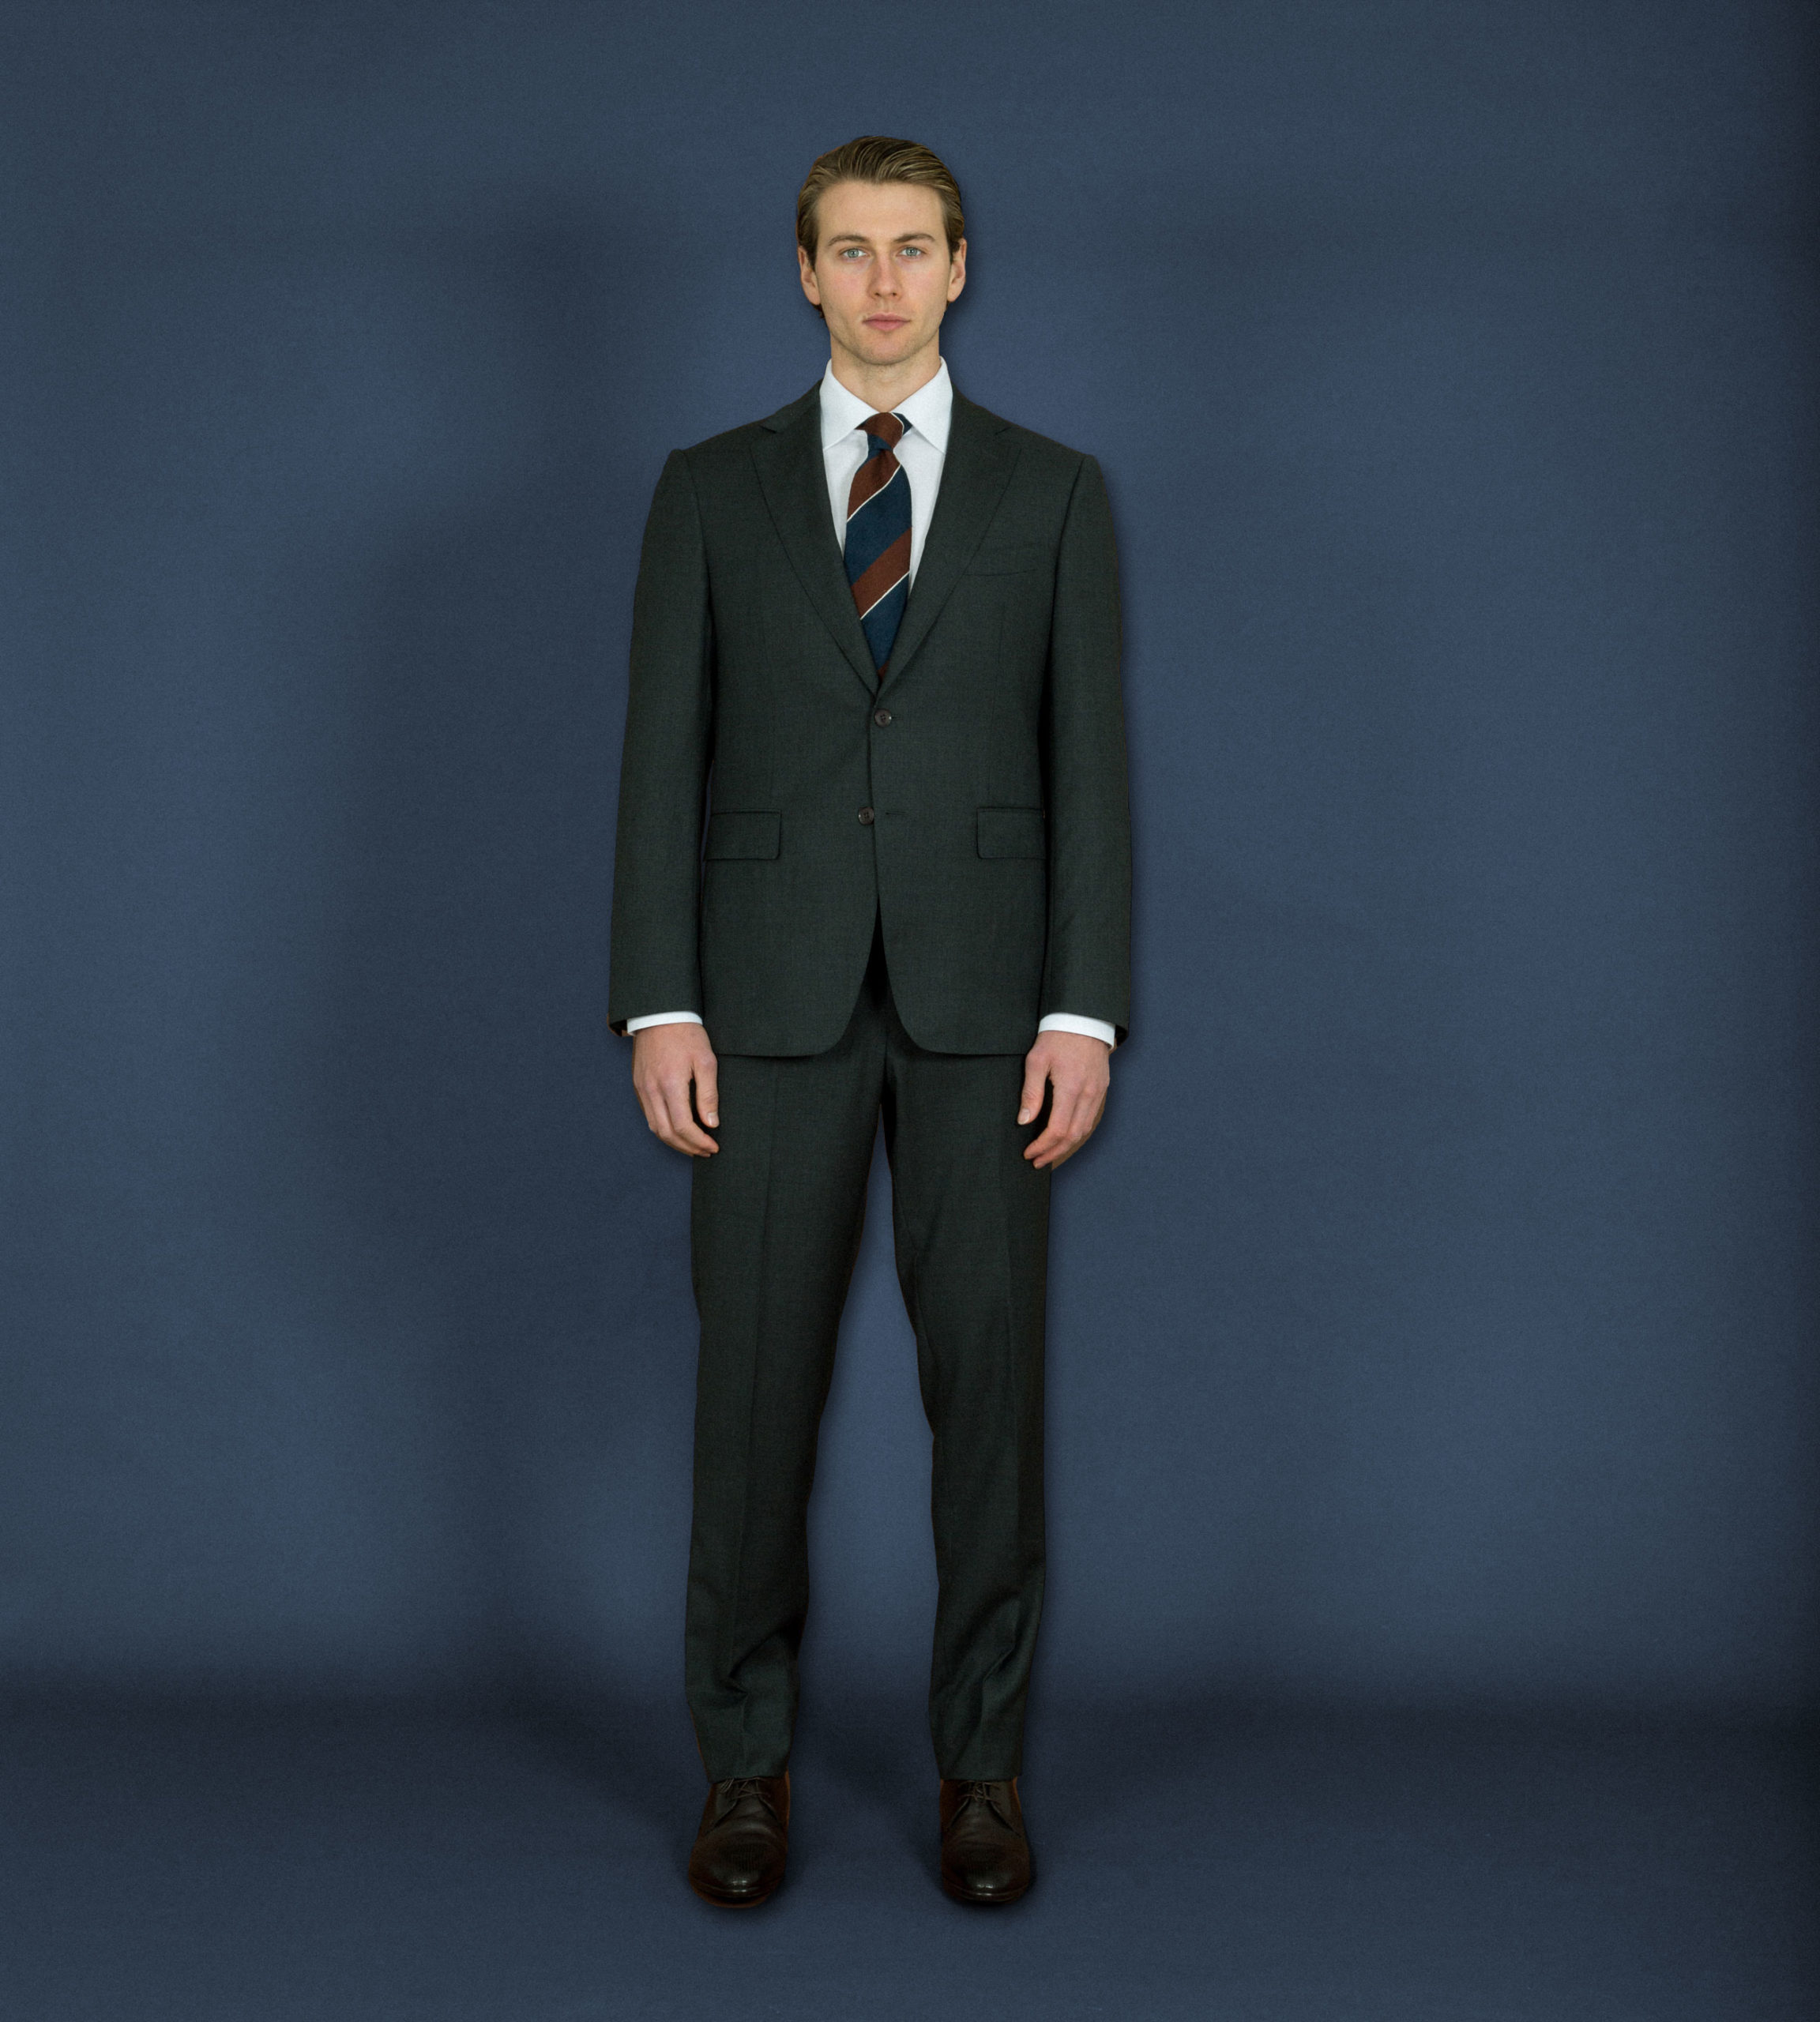 Carl-Nave-Fiorentino-Jacket-Charcoal-Melbourne-Tailor-Bespoke